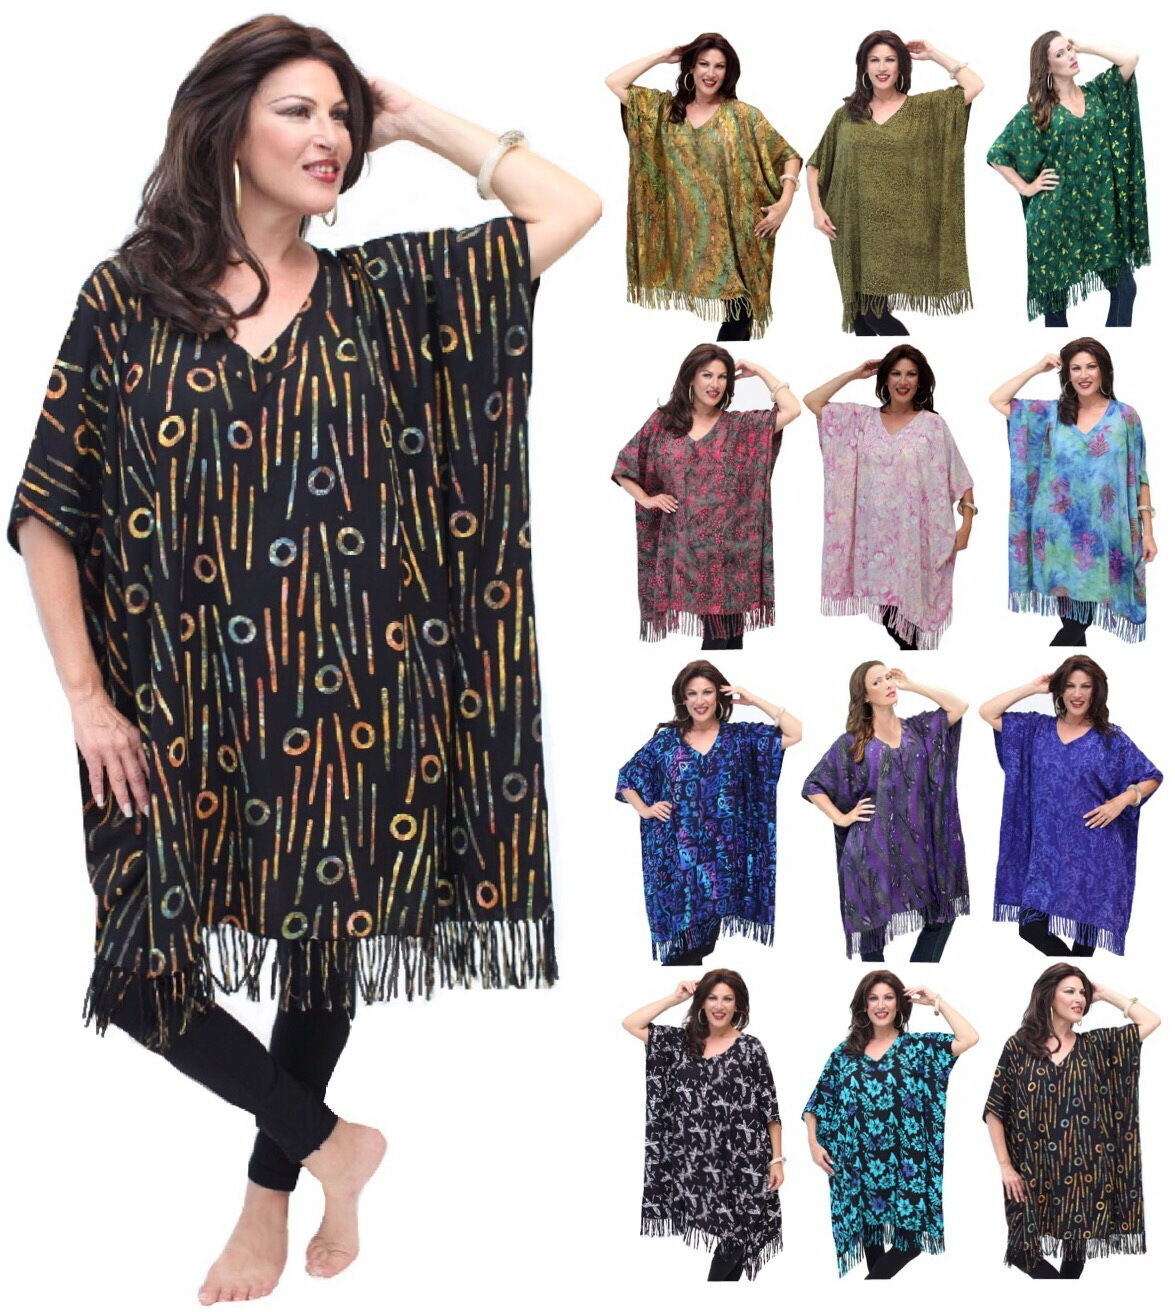 Gypsy Poncho Top-Cover Up Fringed Batik Oversized- T141 Now Size Up To 7X